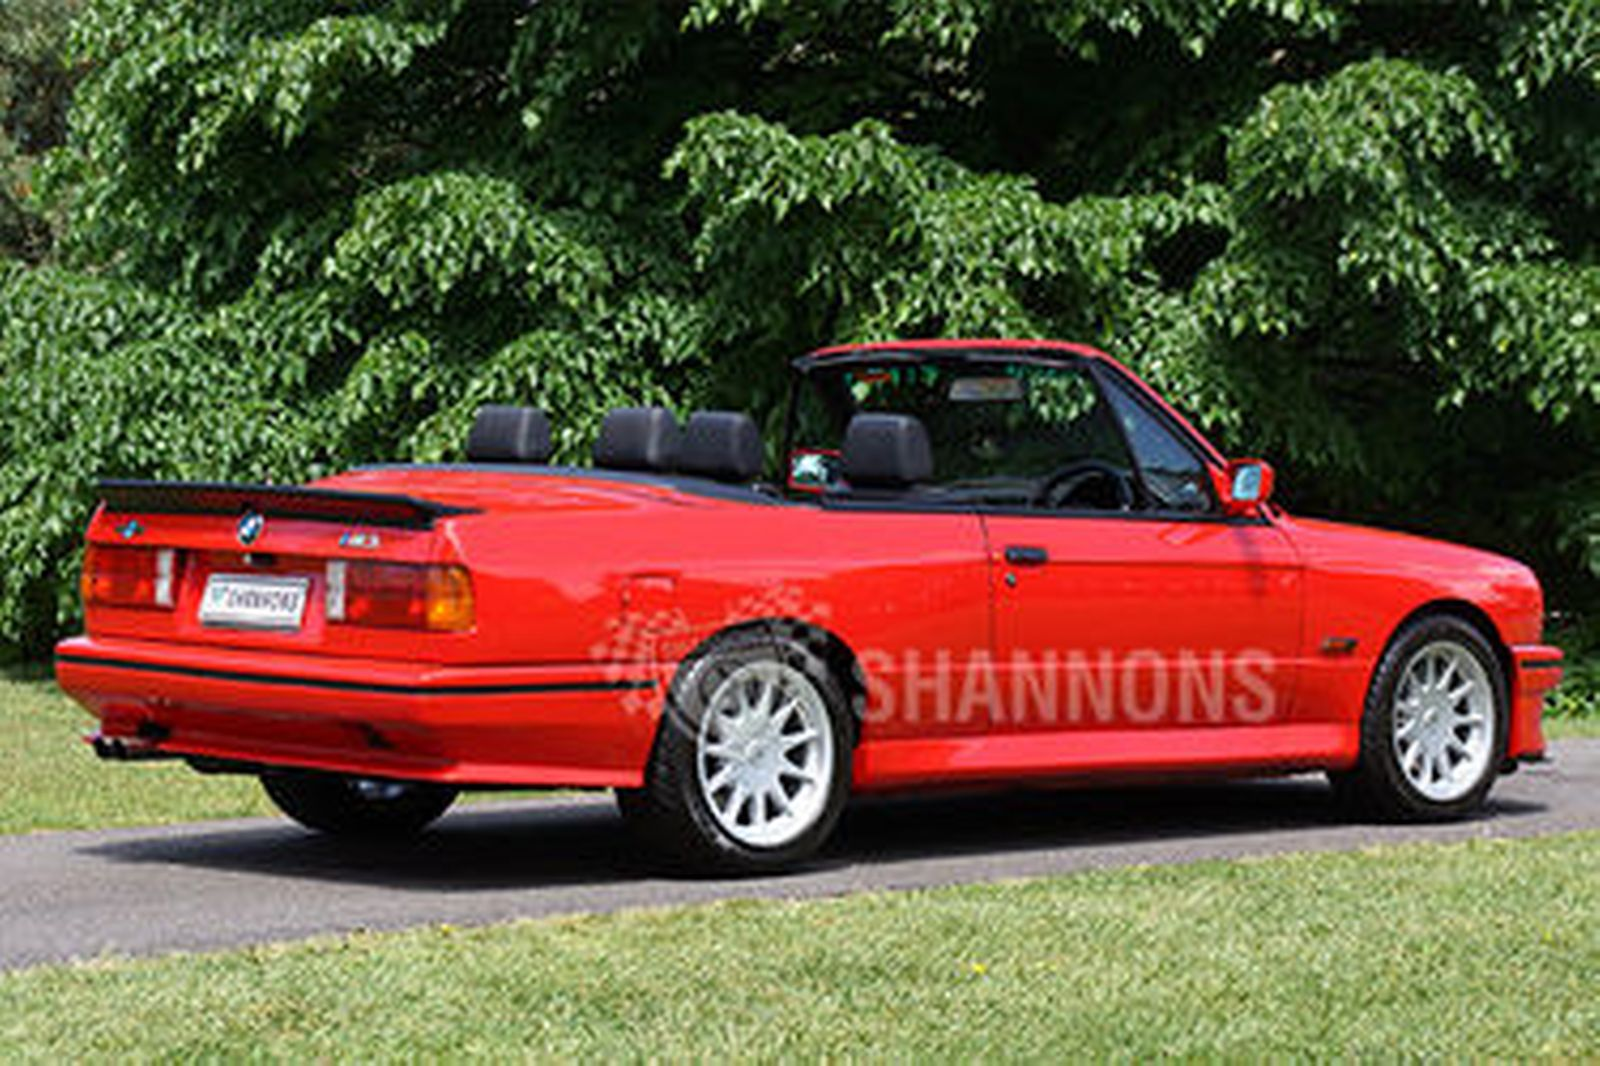 sold bmw m3 e30 convertible rhd auctions lot 17 shannons. Black Bedroom Furniture Sets. Home Design Ideas